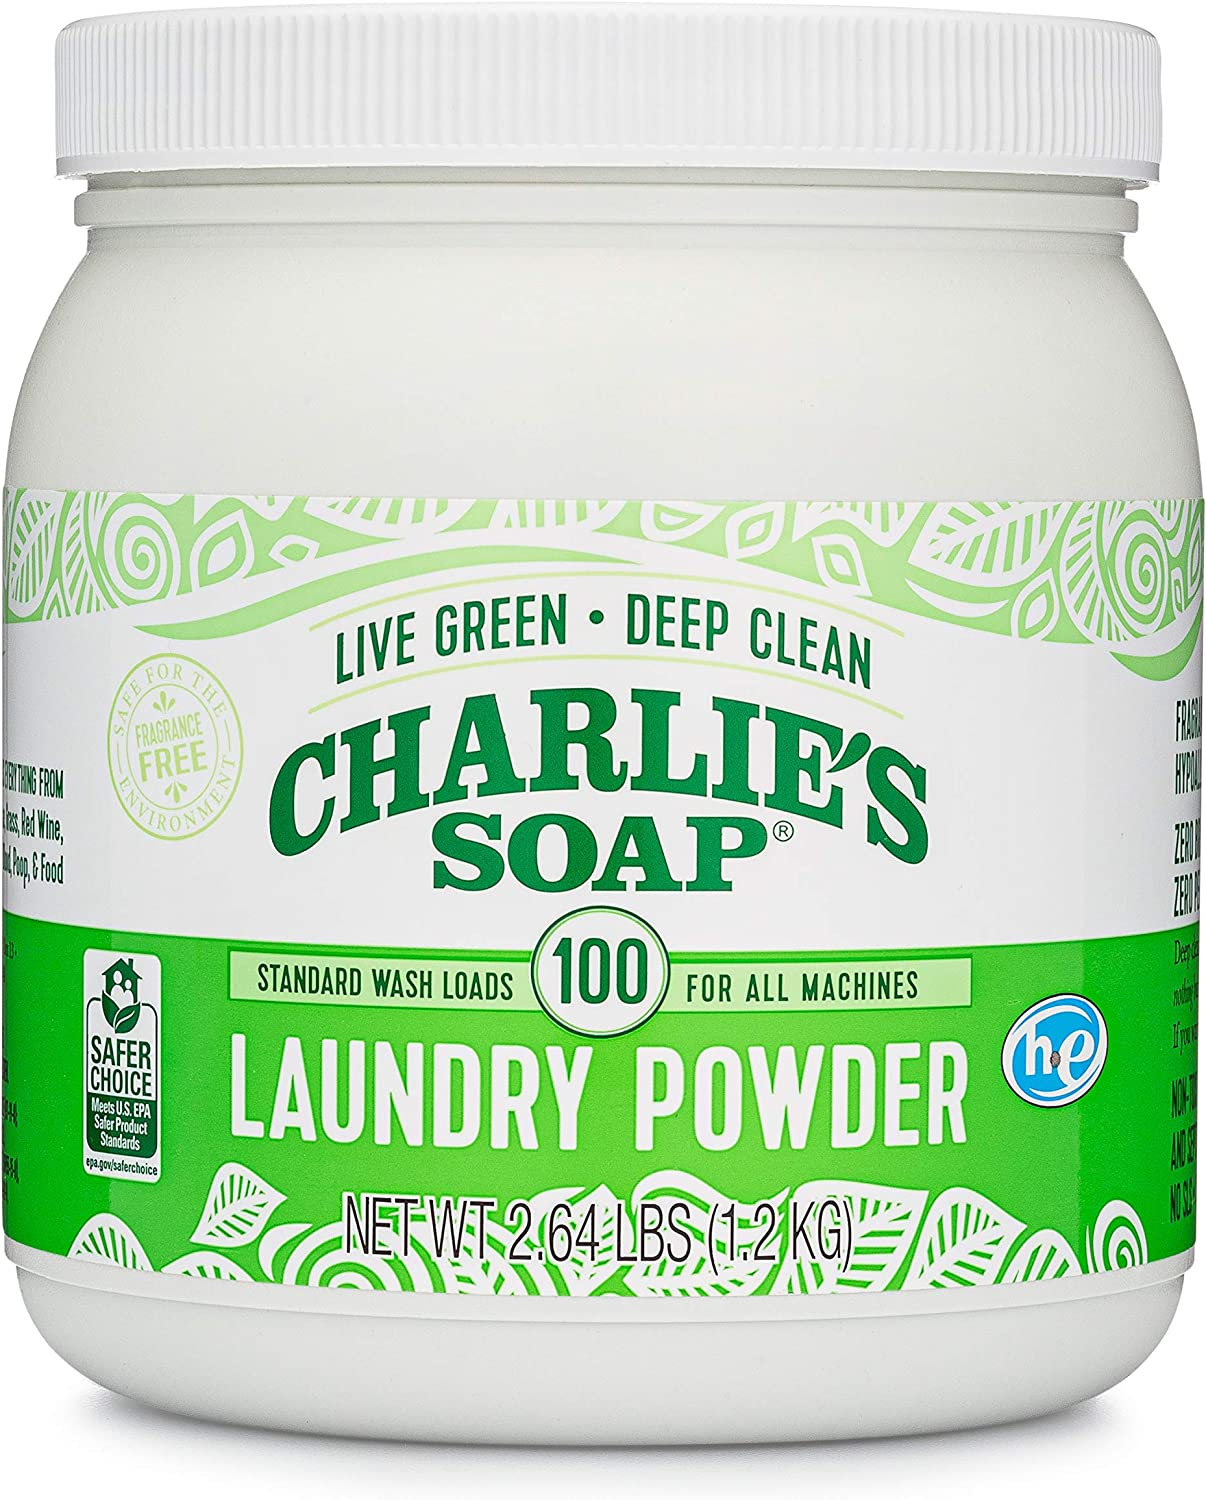 Charlie's Soap Laundry Powder 100 Load - Jar High quality new Refillable Eco-Frie High material